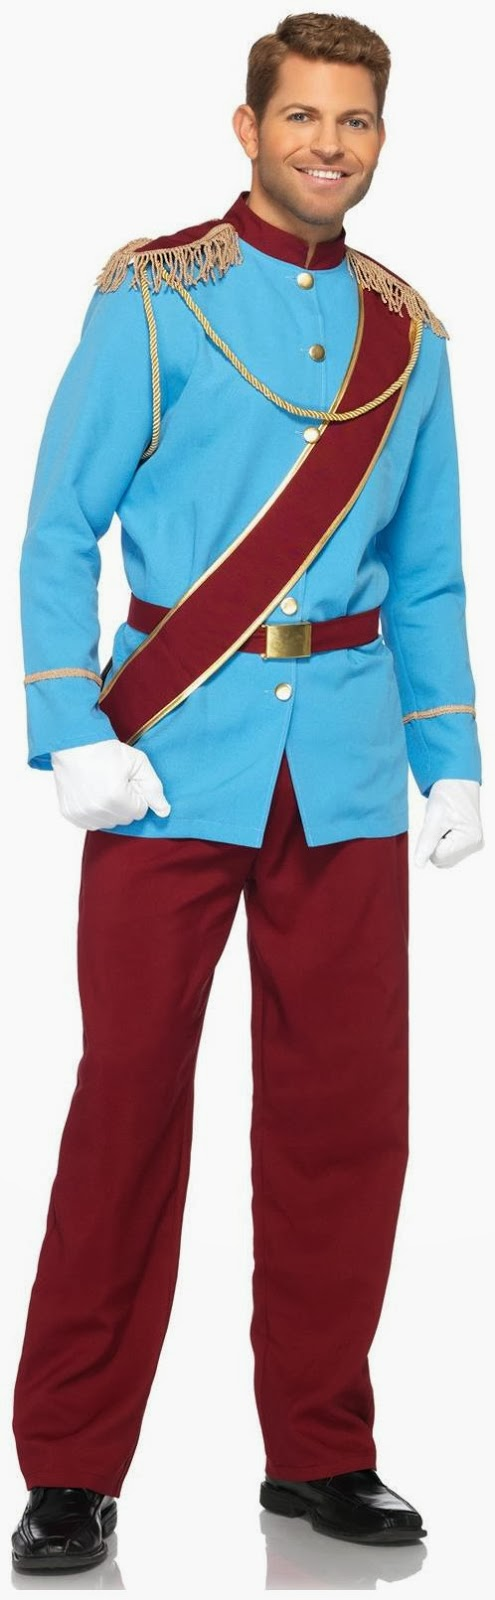 Disney Prince Charming Adult Costume